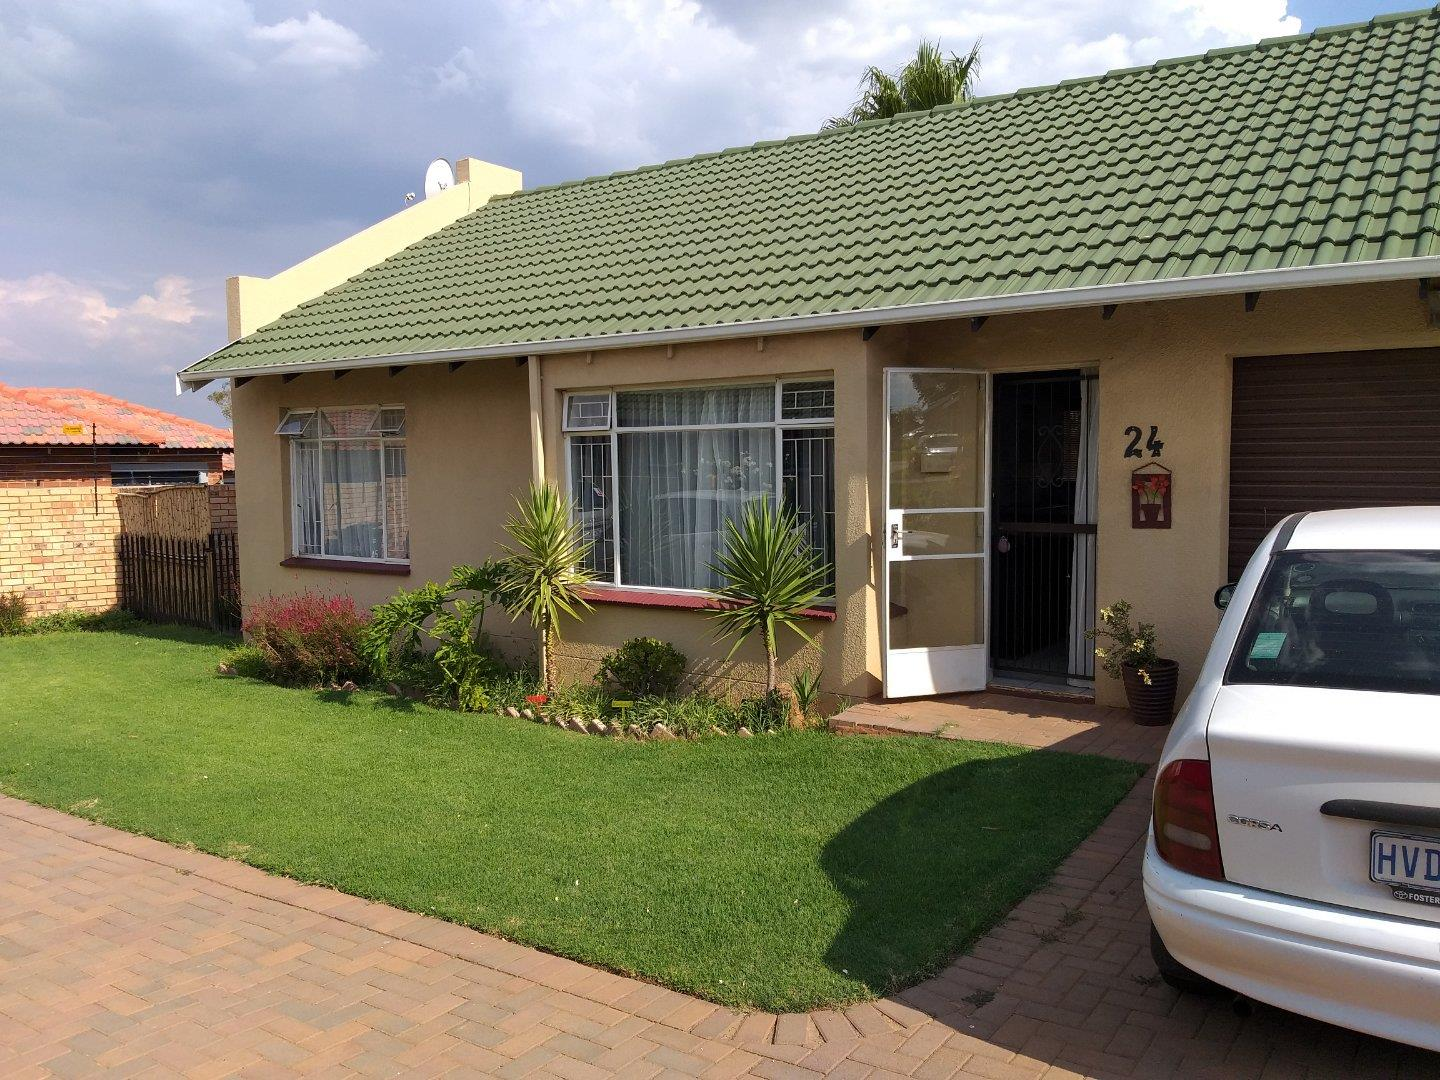 2 Bedroom Townhouse for Sale in Groblerpark, Roodepoort - Gauteng